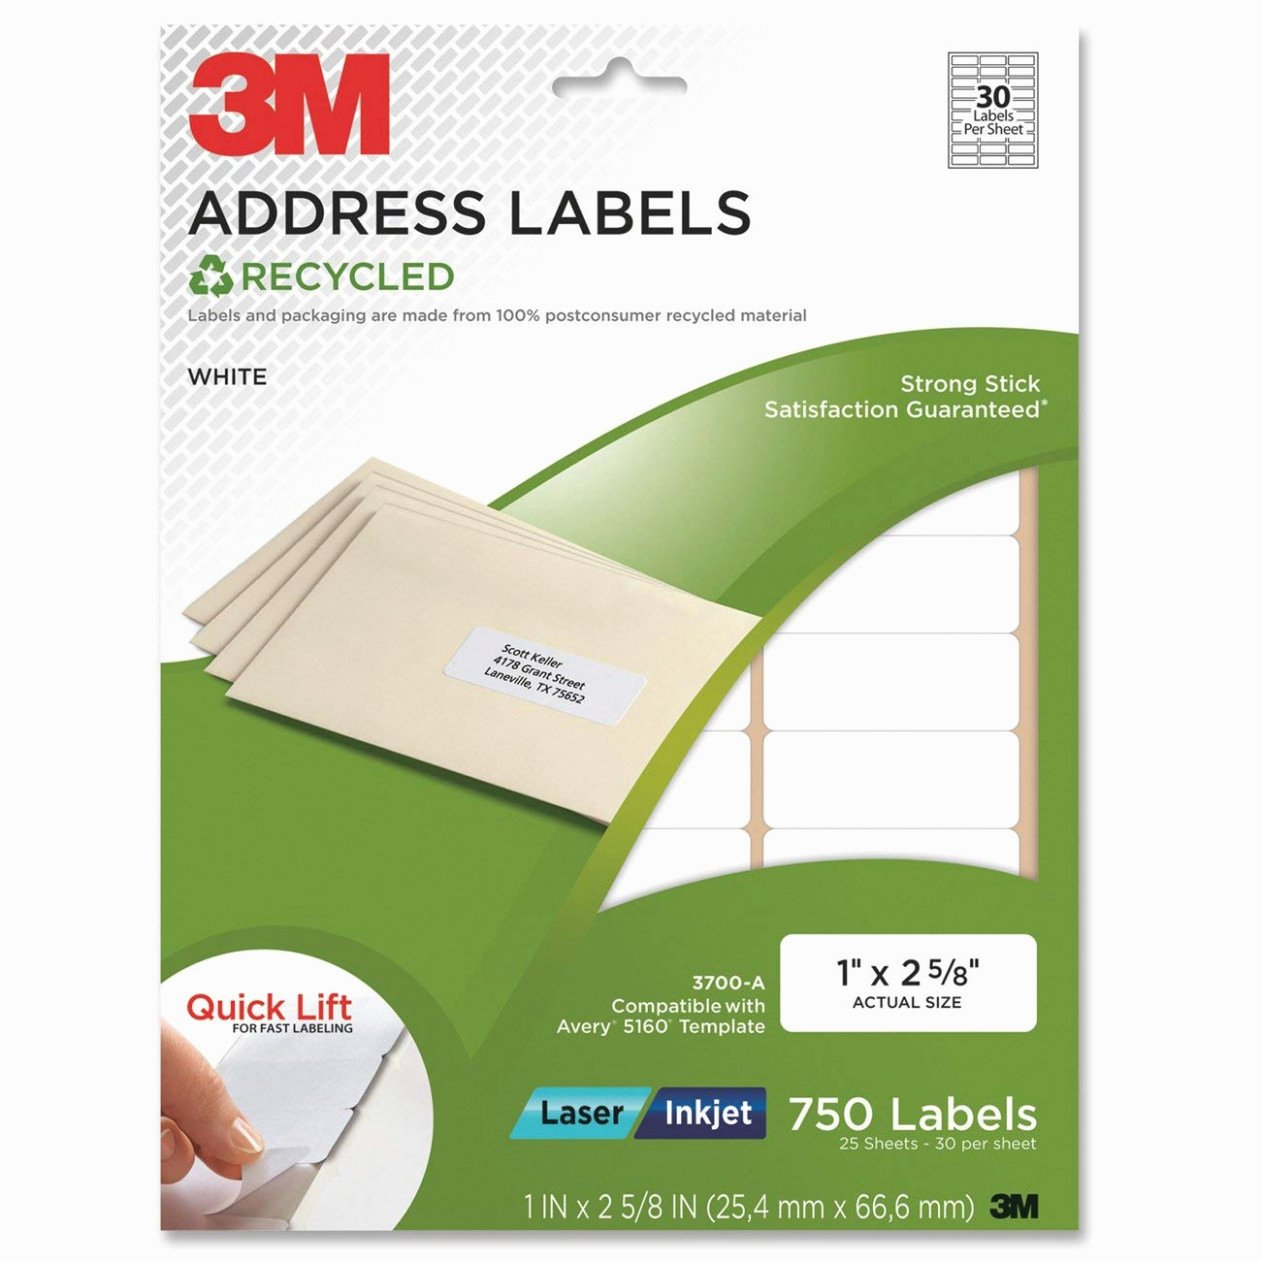 Charity Return Address Labels Awesome is 14m Return Address Labels